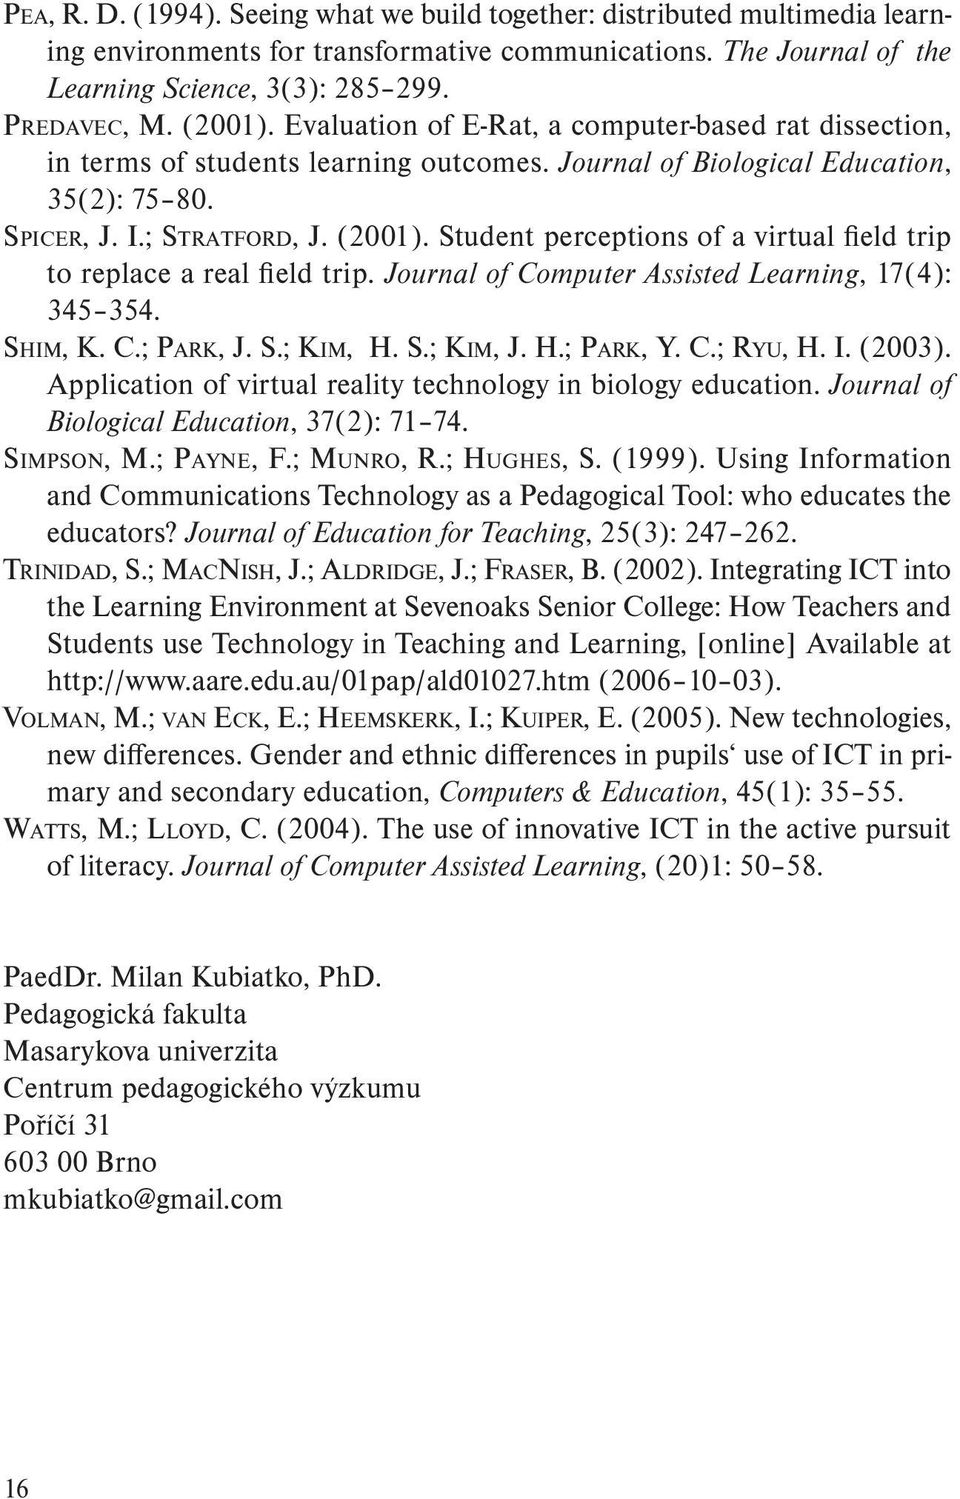 Student perceptions of a virtual field trip to replace a real field trip. Journal of Computer Assisted Learning, 17(4): 345 354. Shim, K. C.; Park, J. S.; Kim, H. S.; Kim, J. H.; Park, Y. C.; Ryu, H.